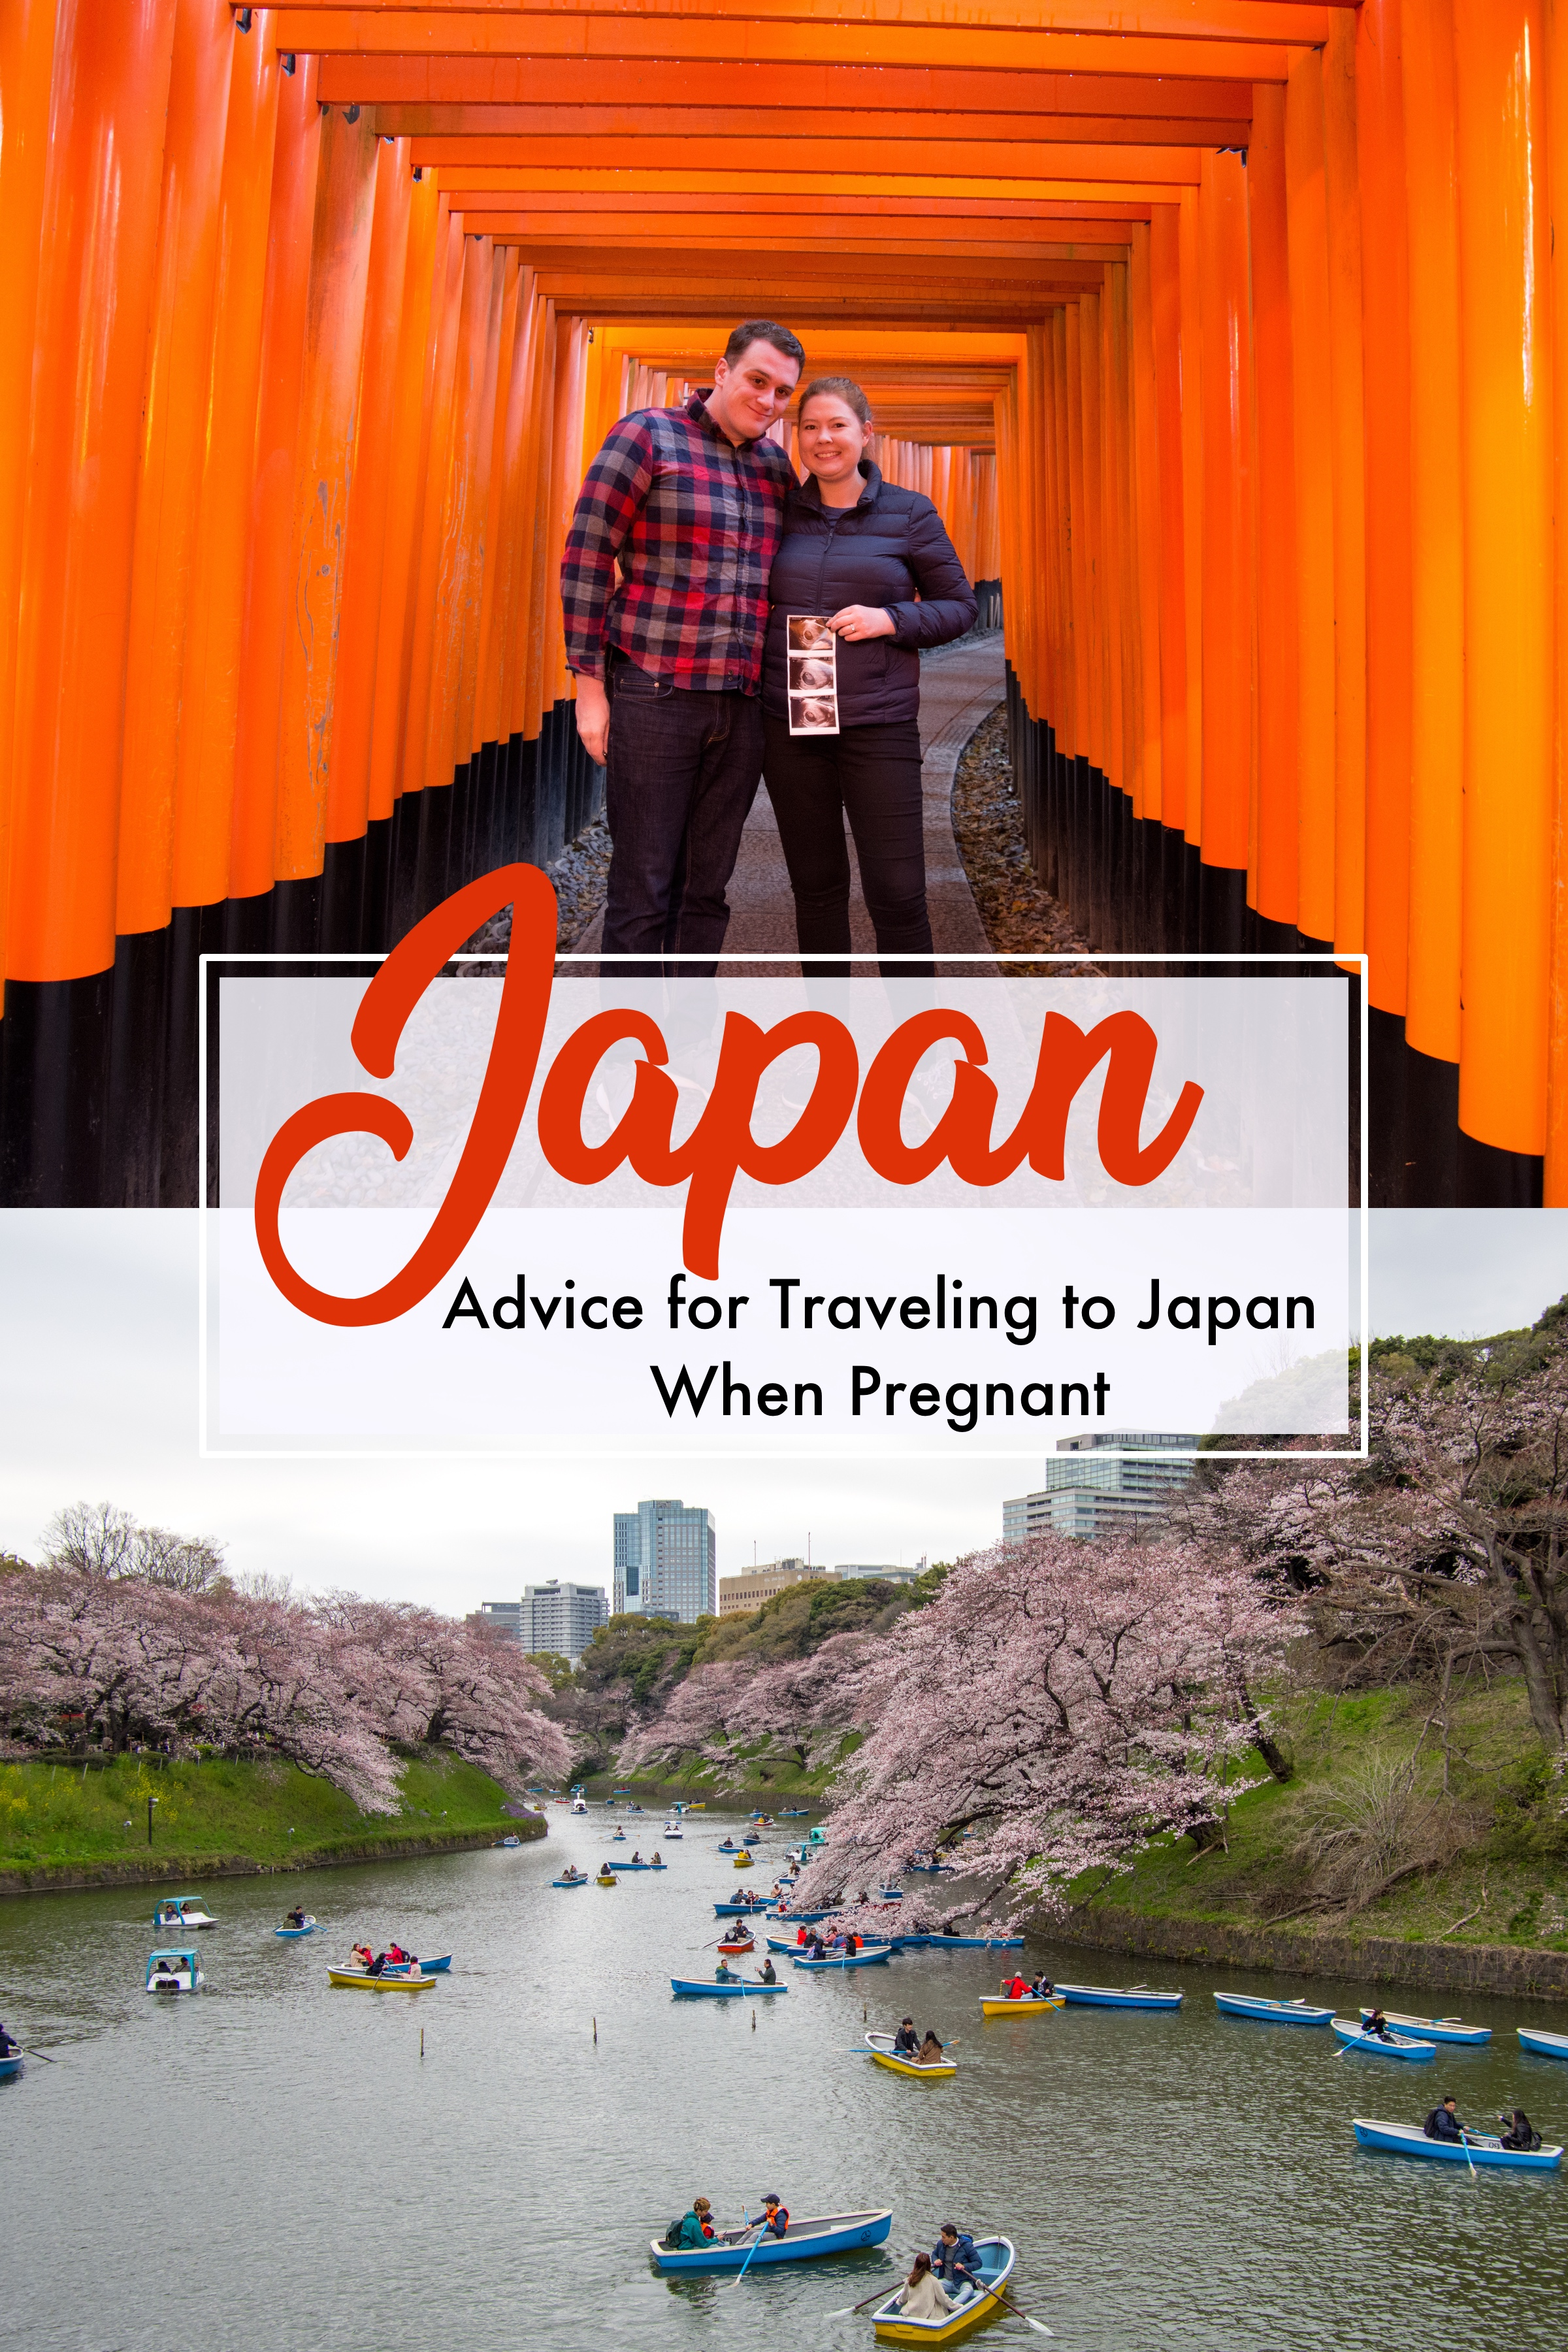 Tips for Traveling to Japan When Pregnant.  Japan is a perfect destination for a Babymoon, but there are things to consider when visiting Japan when you are expecting. #Japan #babymoon #pregnant #travel #pregnanttravel